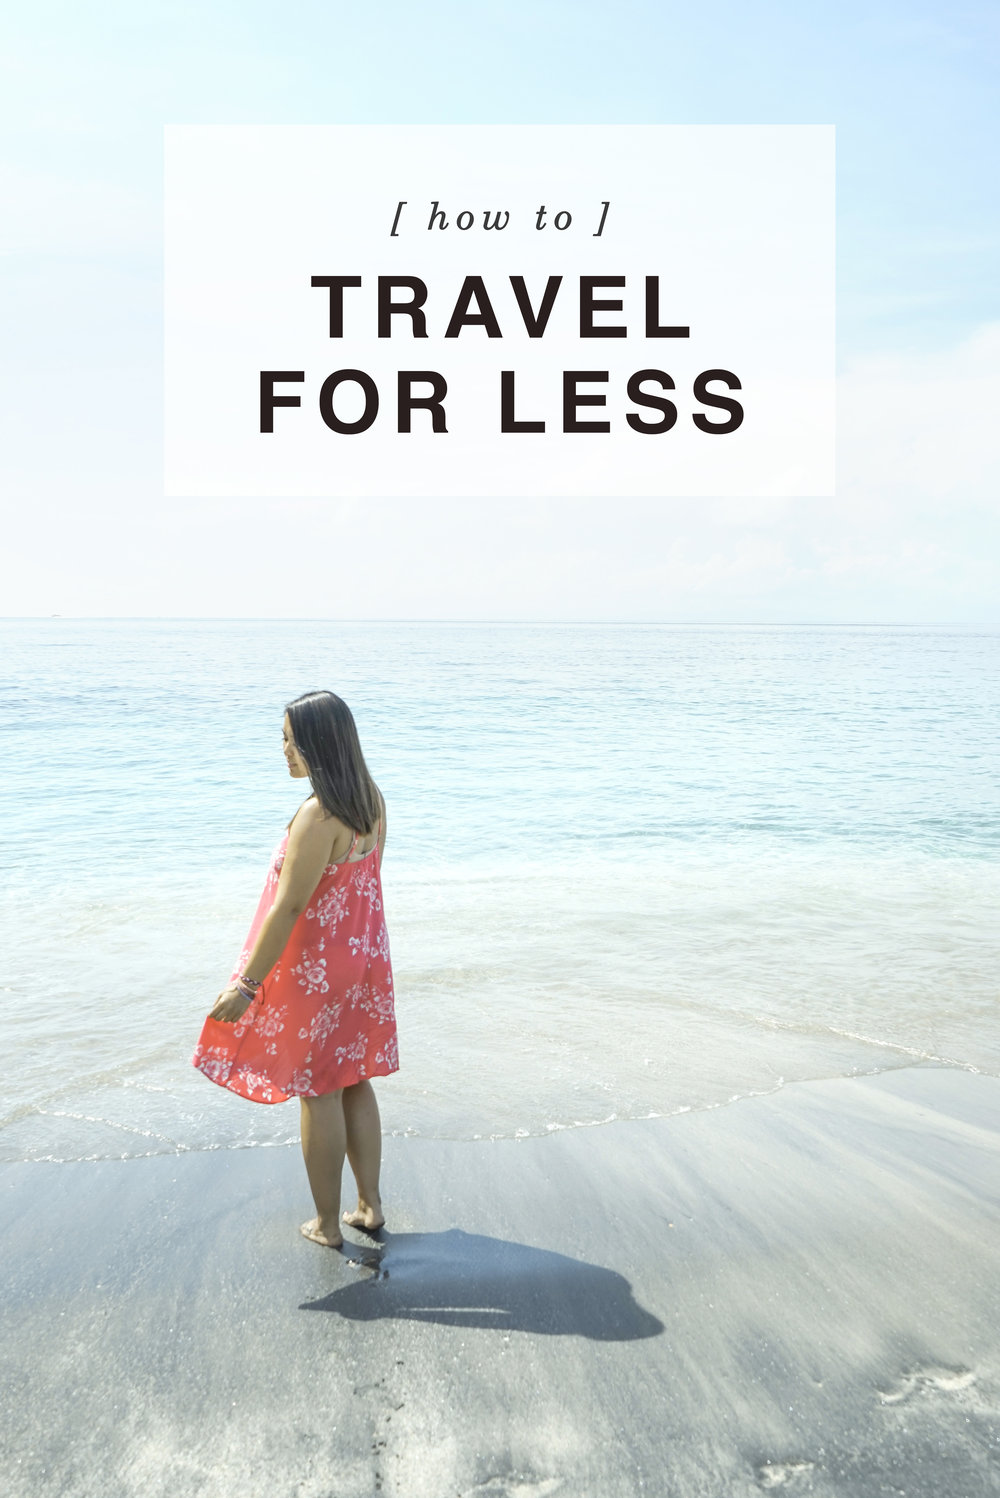 How to Travel for Less